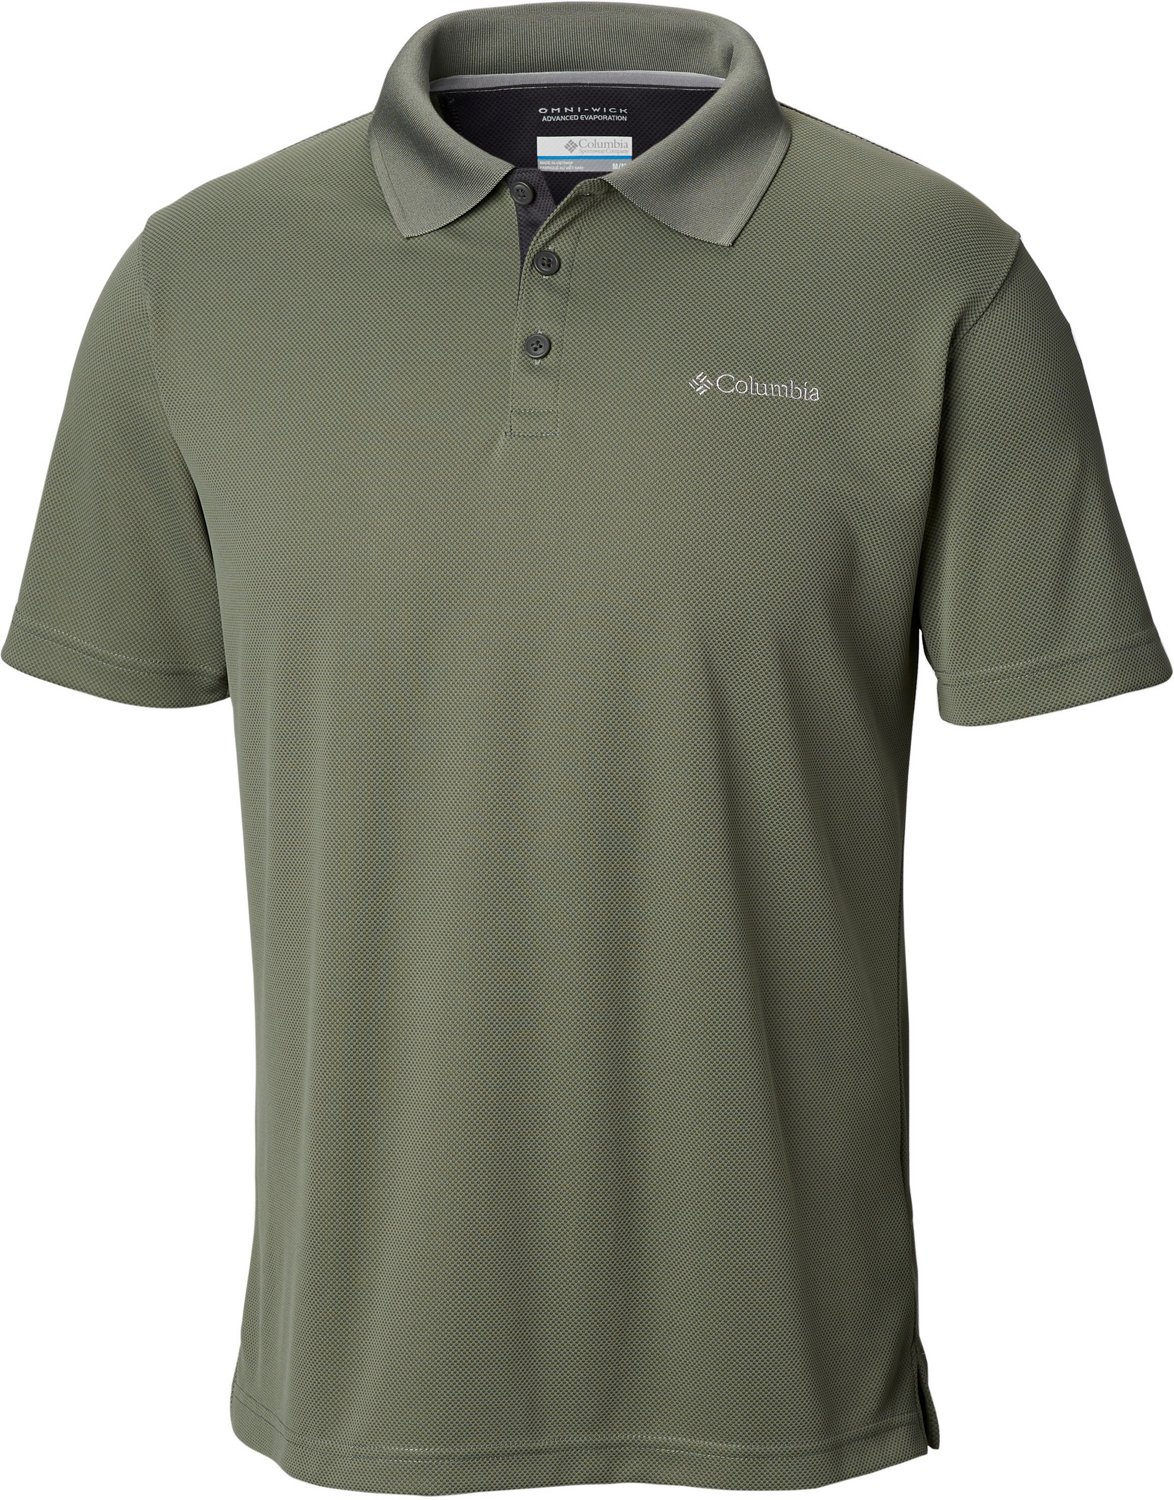 bac5d4312ccd Display product reviews for Columbia Sportswear Men s Utilizer Polo Shirt